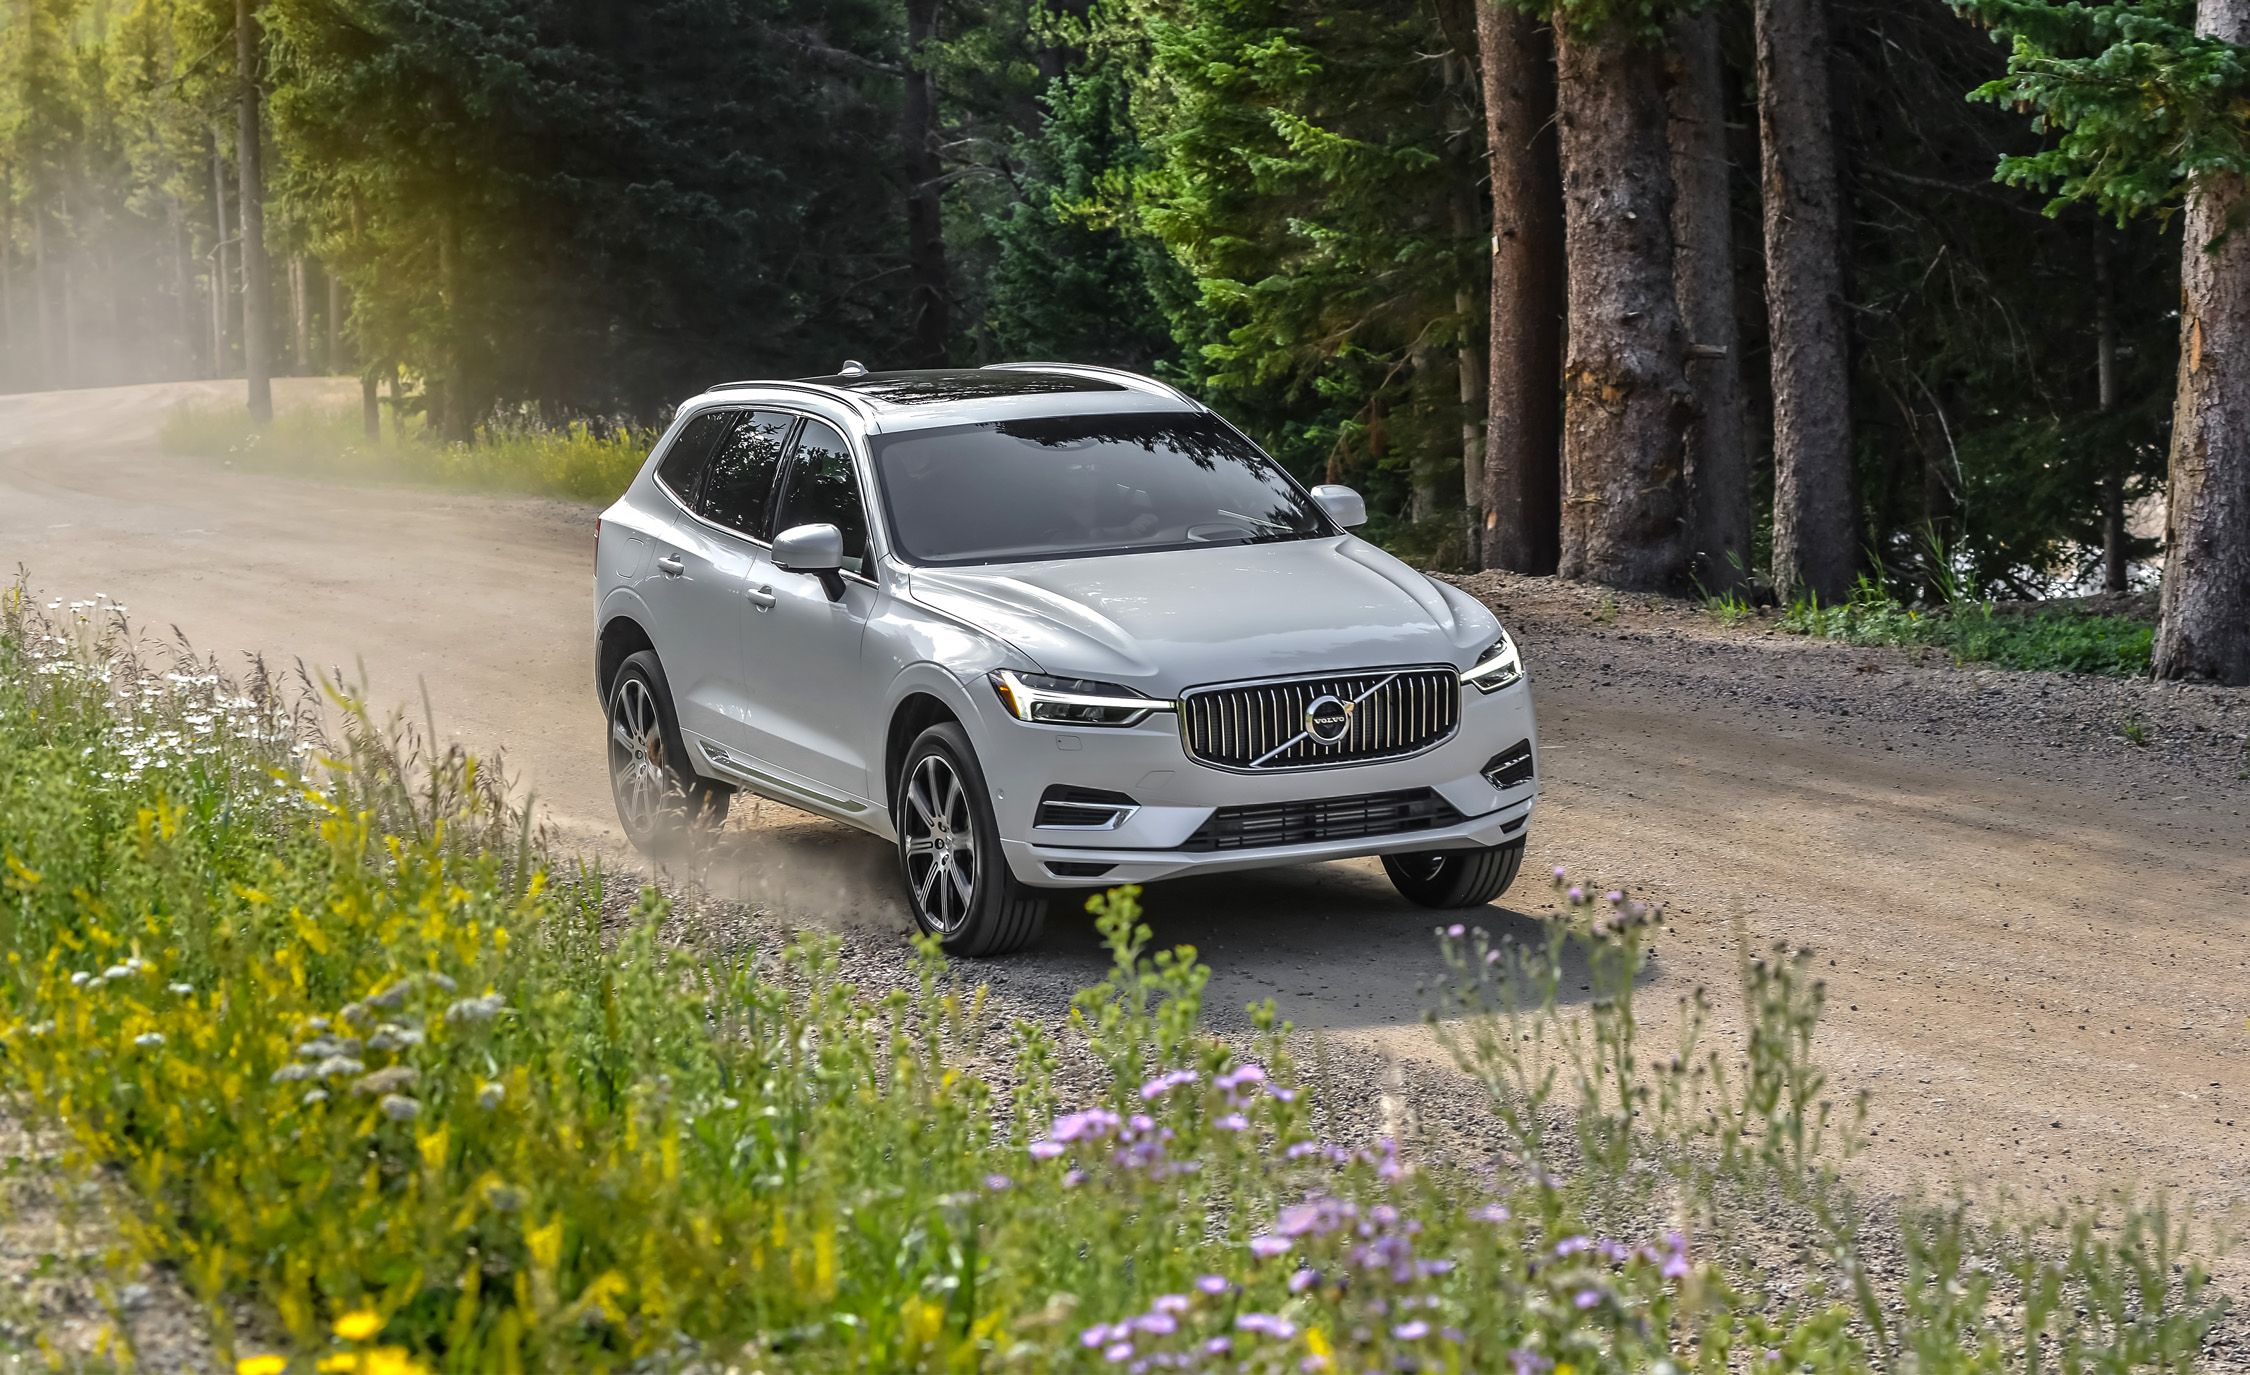 Volvo Xc90 T8 Hybrid >> 2018 Volvo XC60 T8 Plug-In Hybrid First Drive | Review | Car and Driver